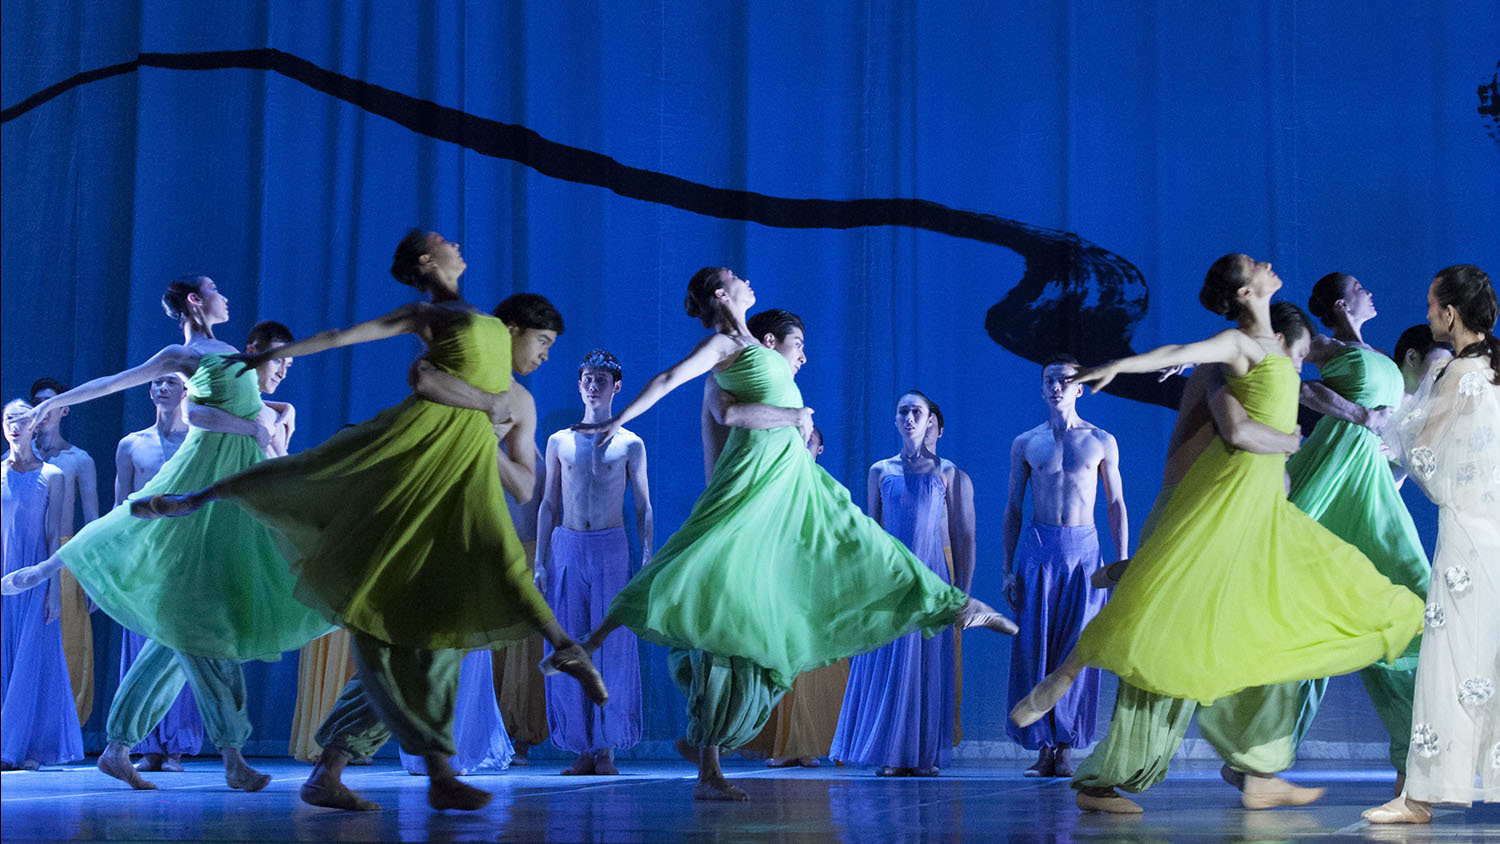 Beautiful photos of the National Ballet of China's The Peony Pavilion